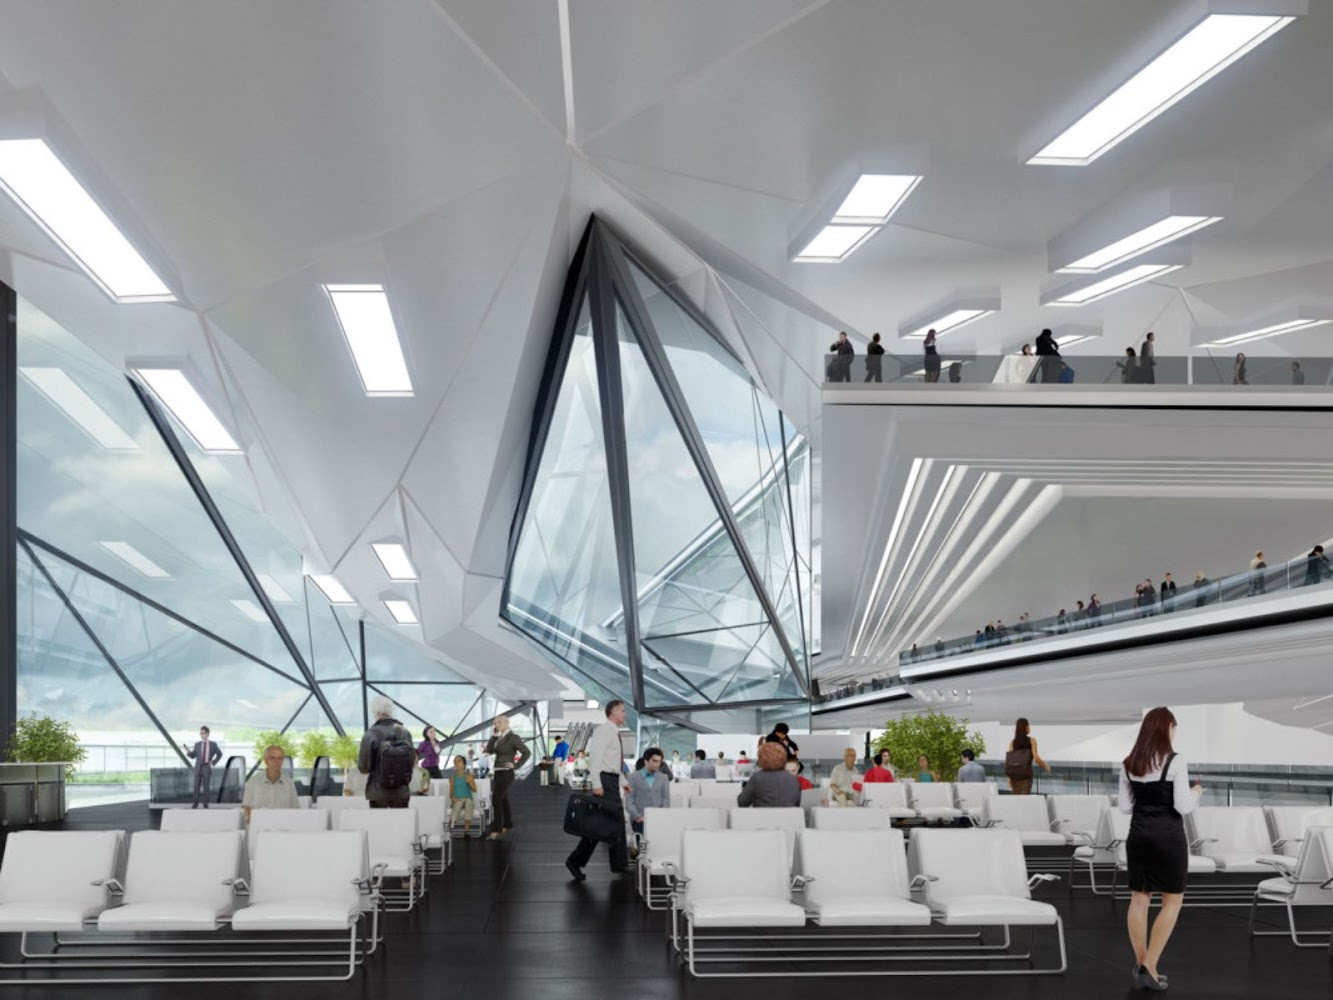 Passenger Service Center by Urban Office Architecture